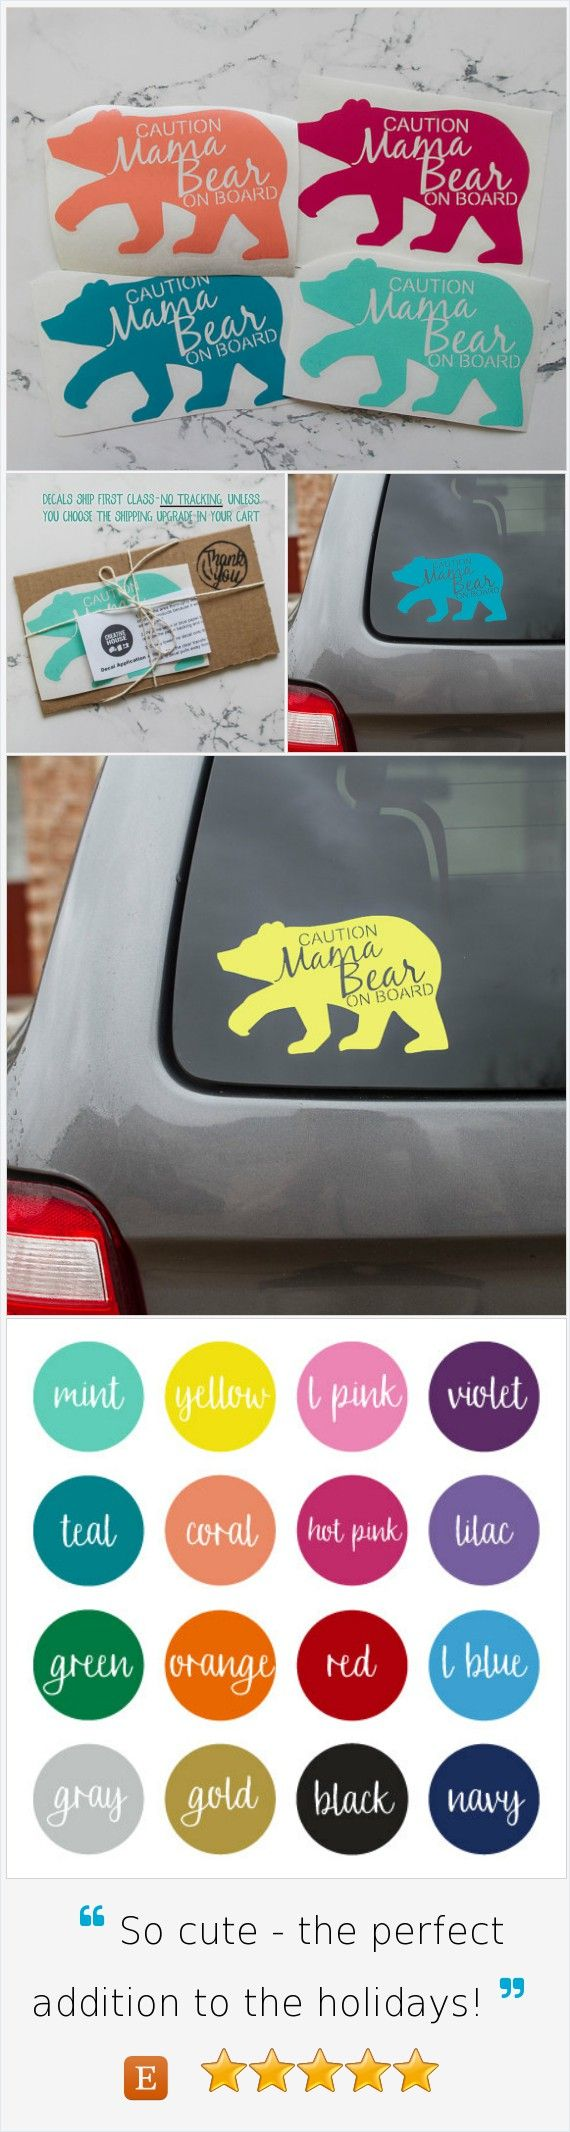 Unique Vinyl Car Decals Ideas On Pinterest Decals For Cars - How to create vinyl decals suggestions